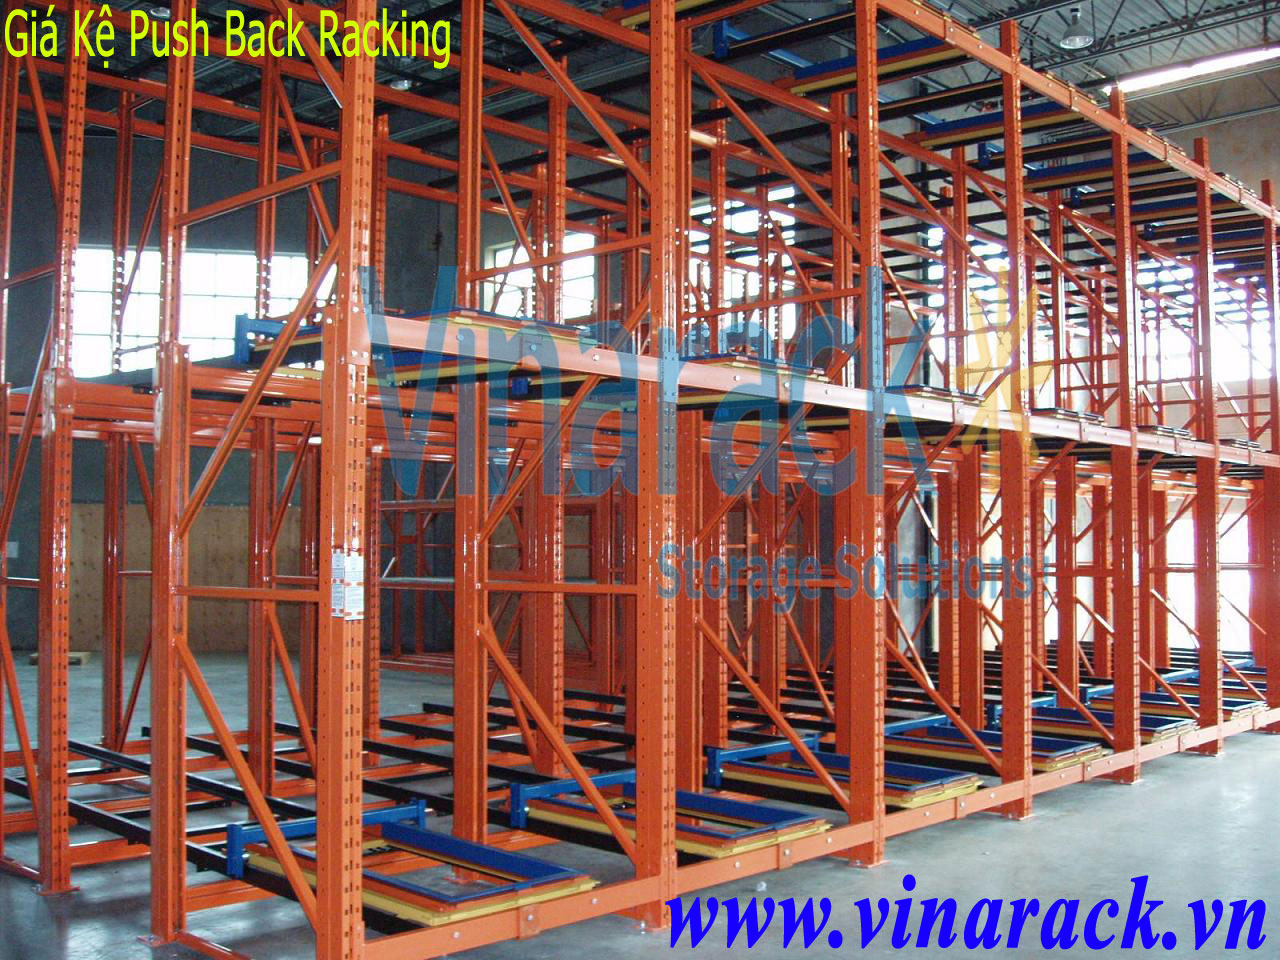 Kệ Push Back Racking Chứa Pallet